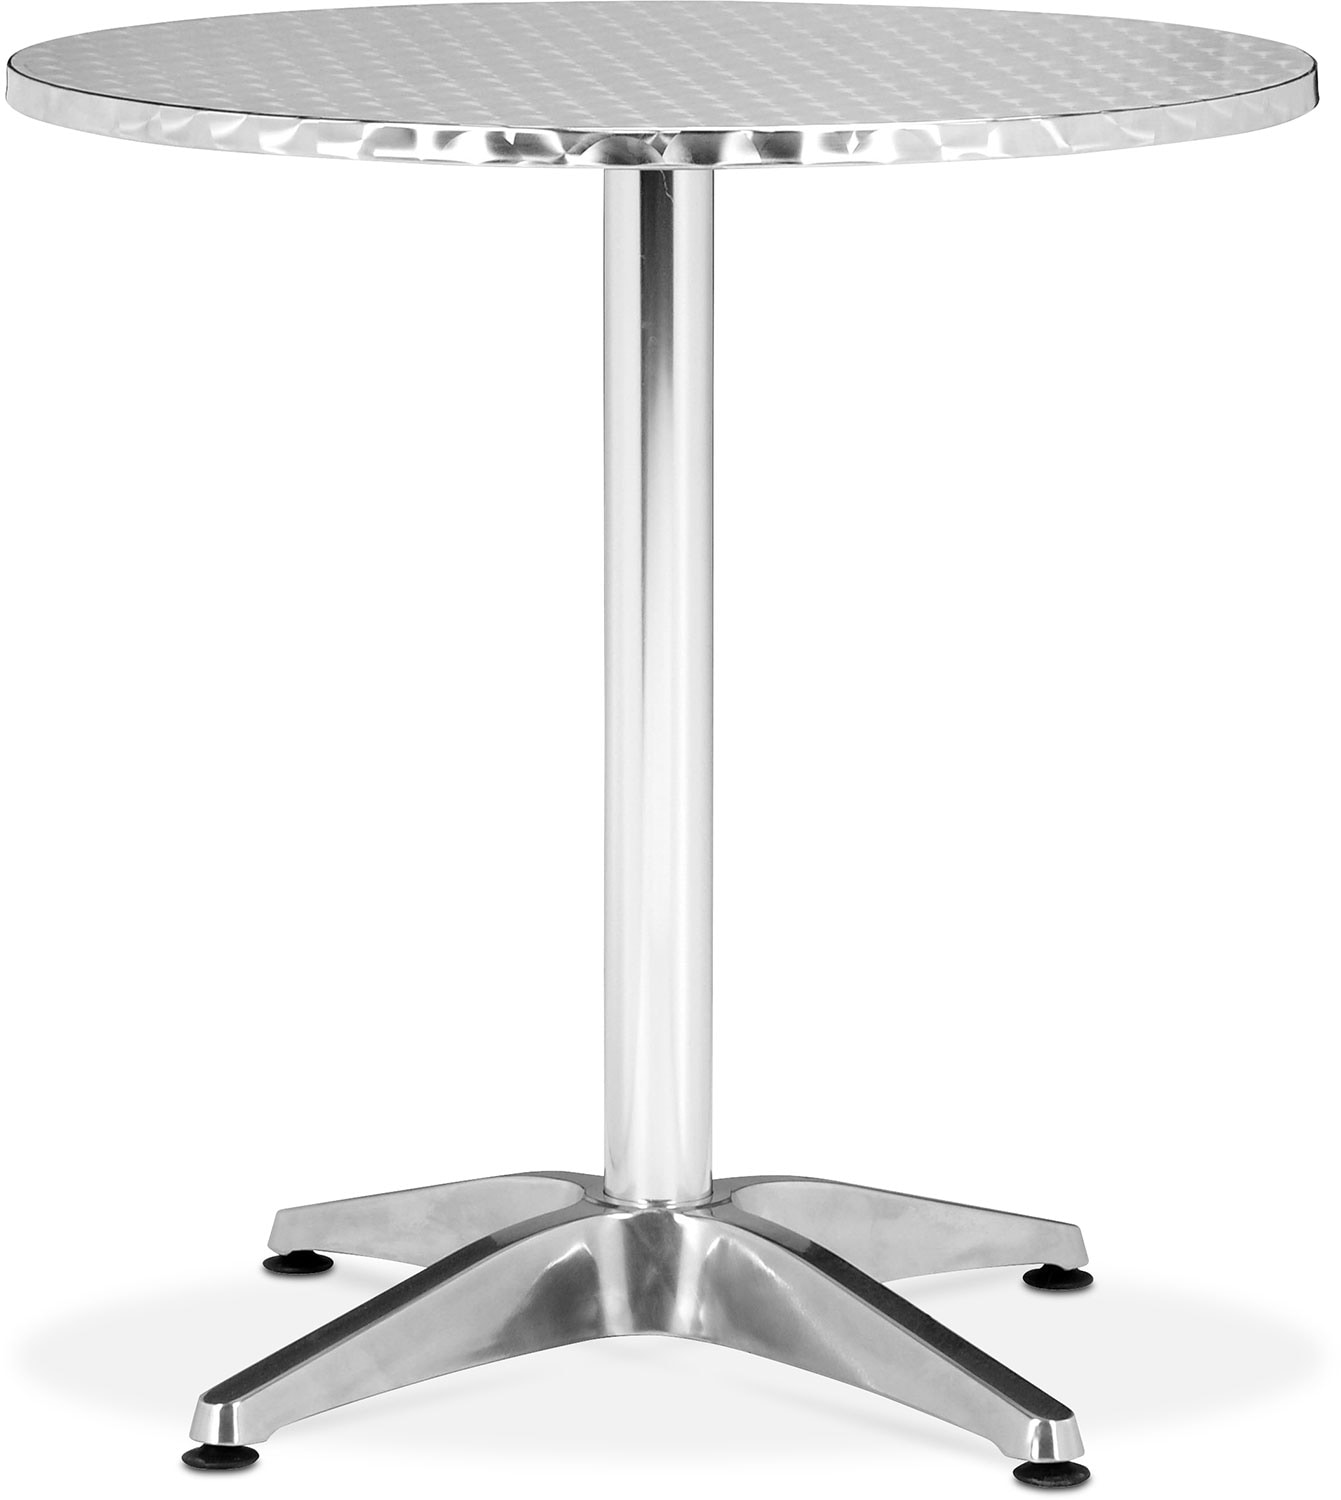 Cleo Outdoor Round Table - Gray